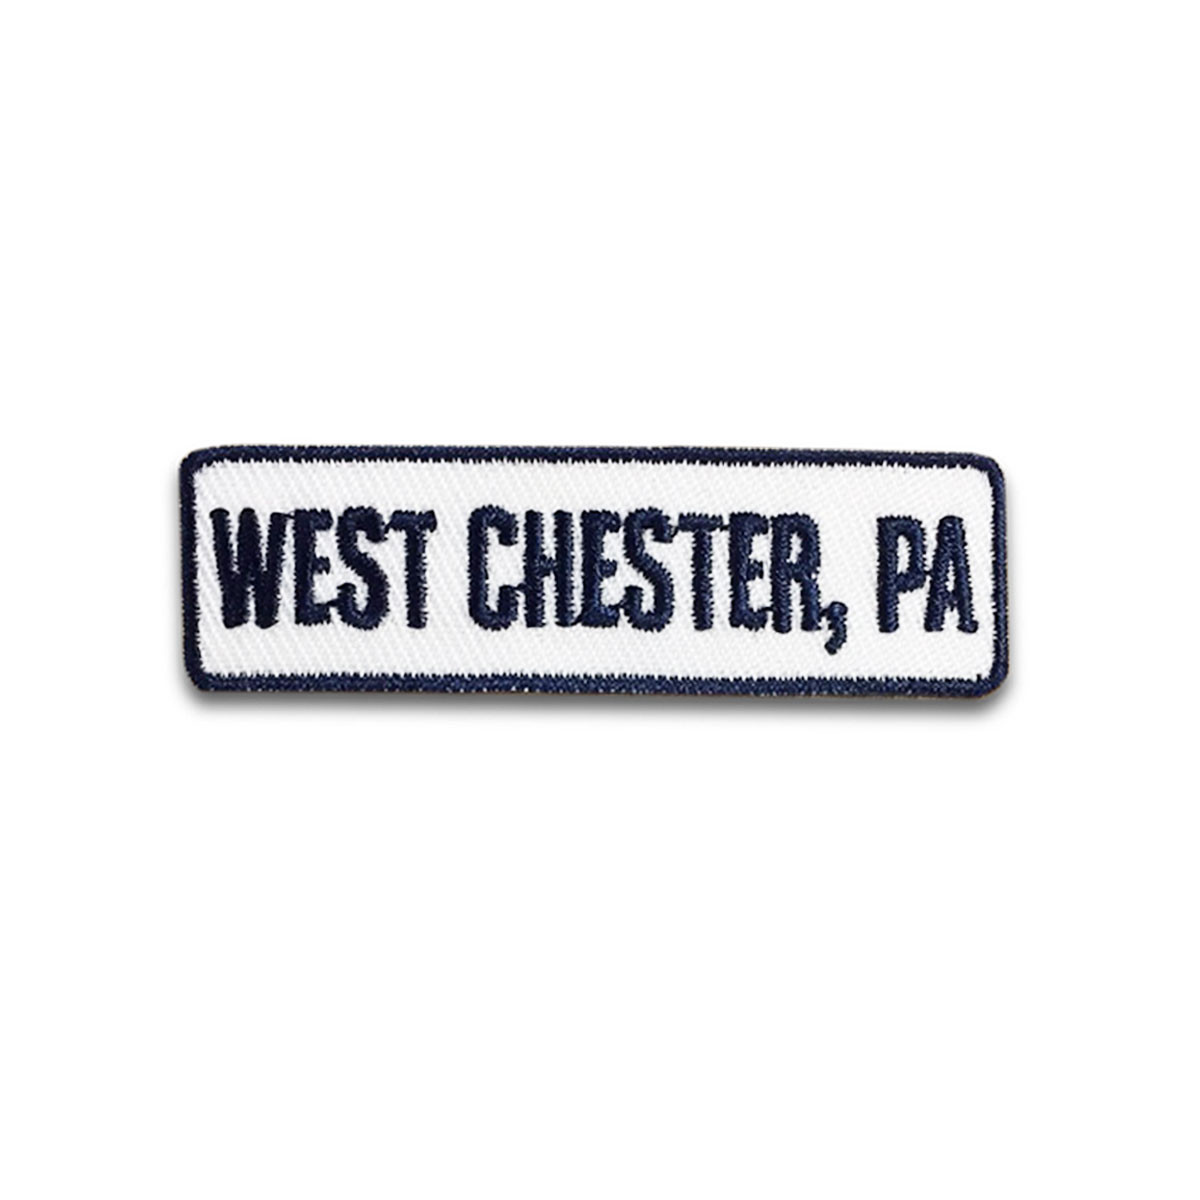 West Chester, PA Rocker Patch